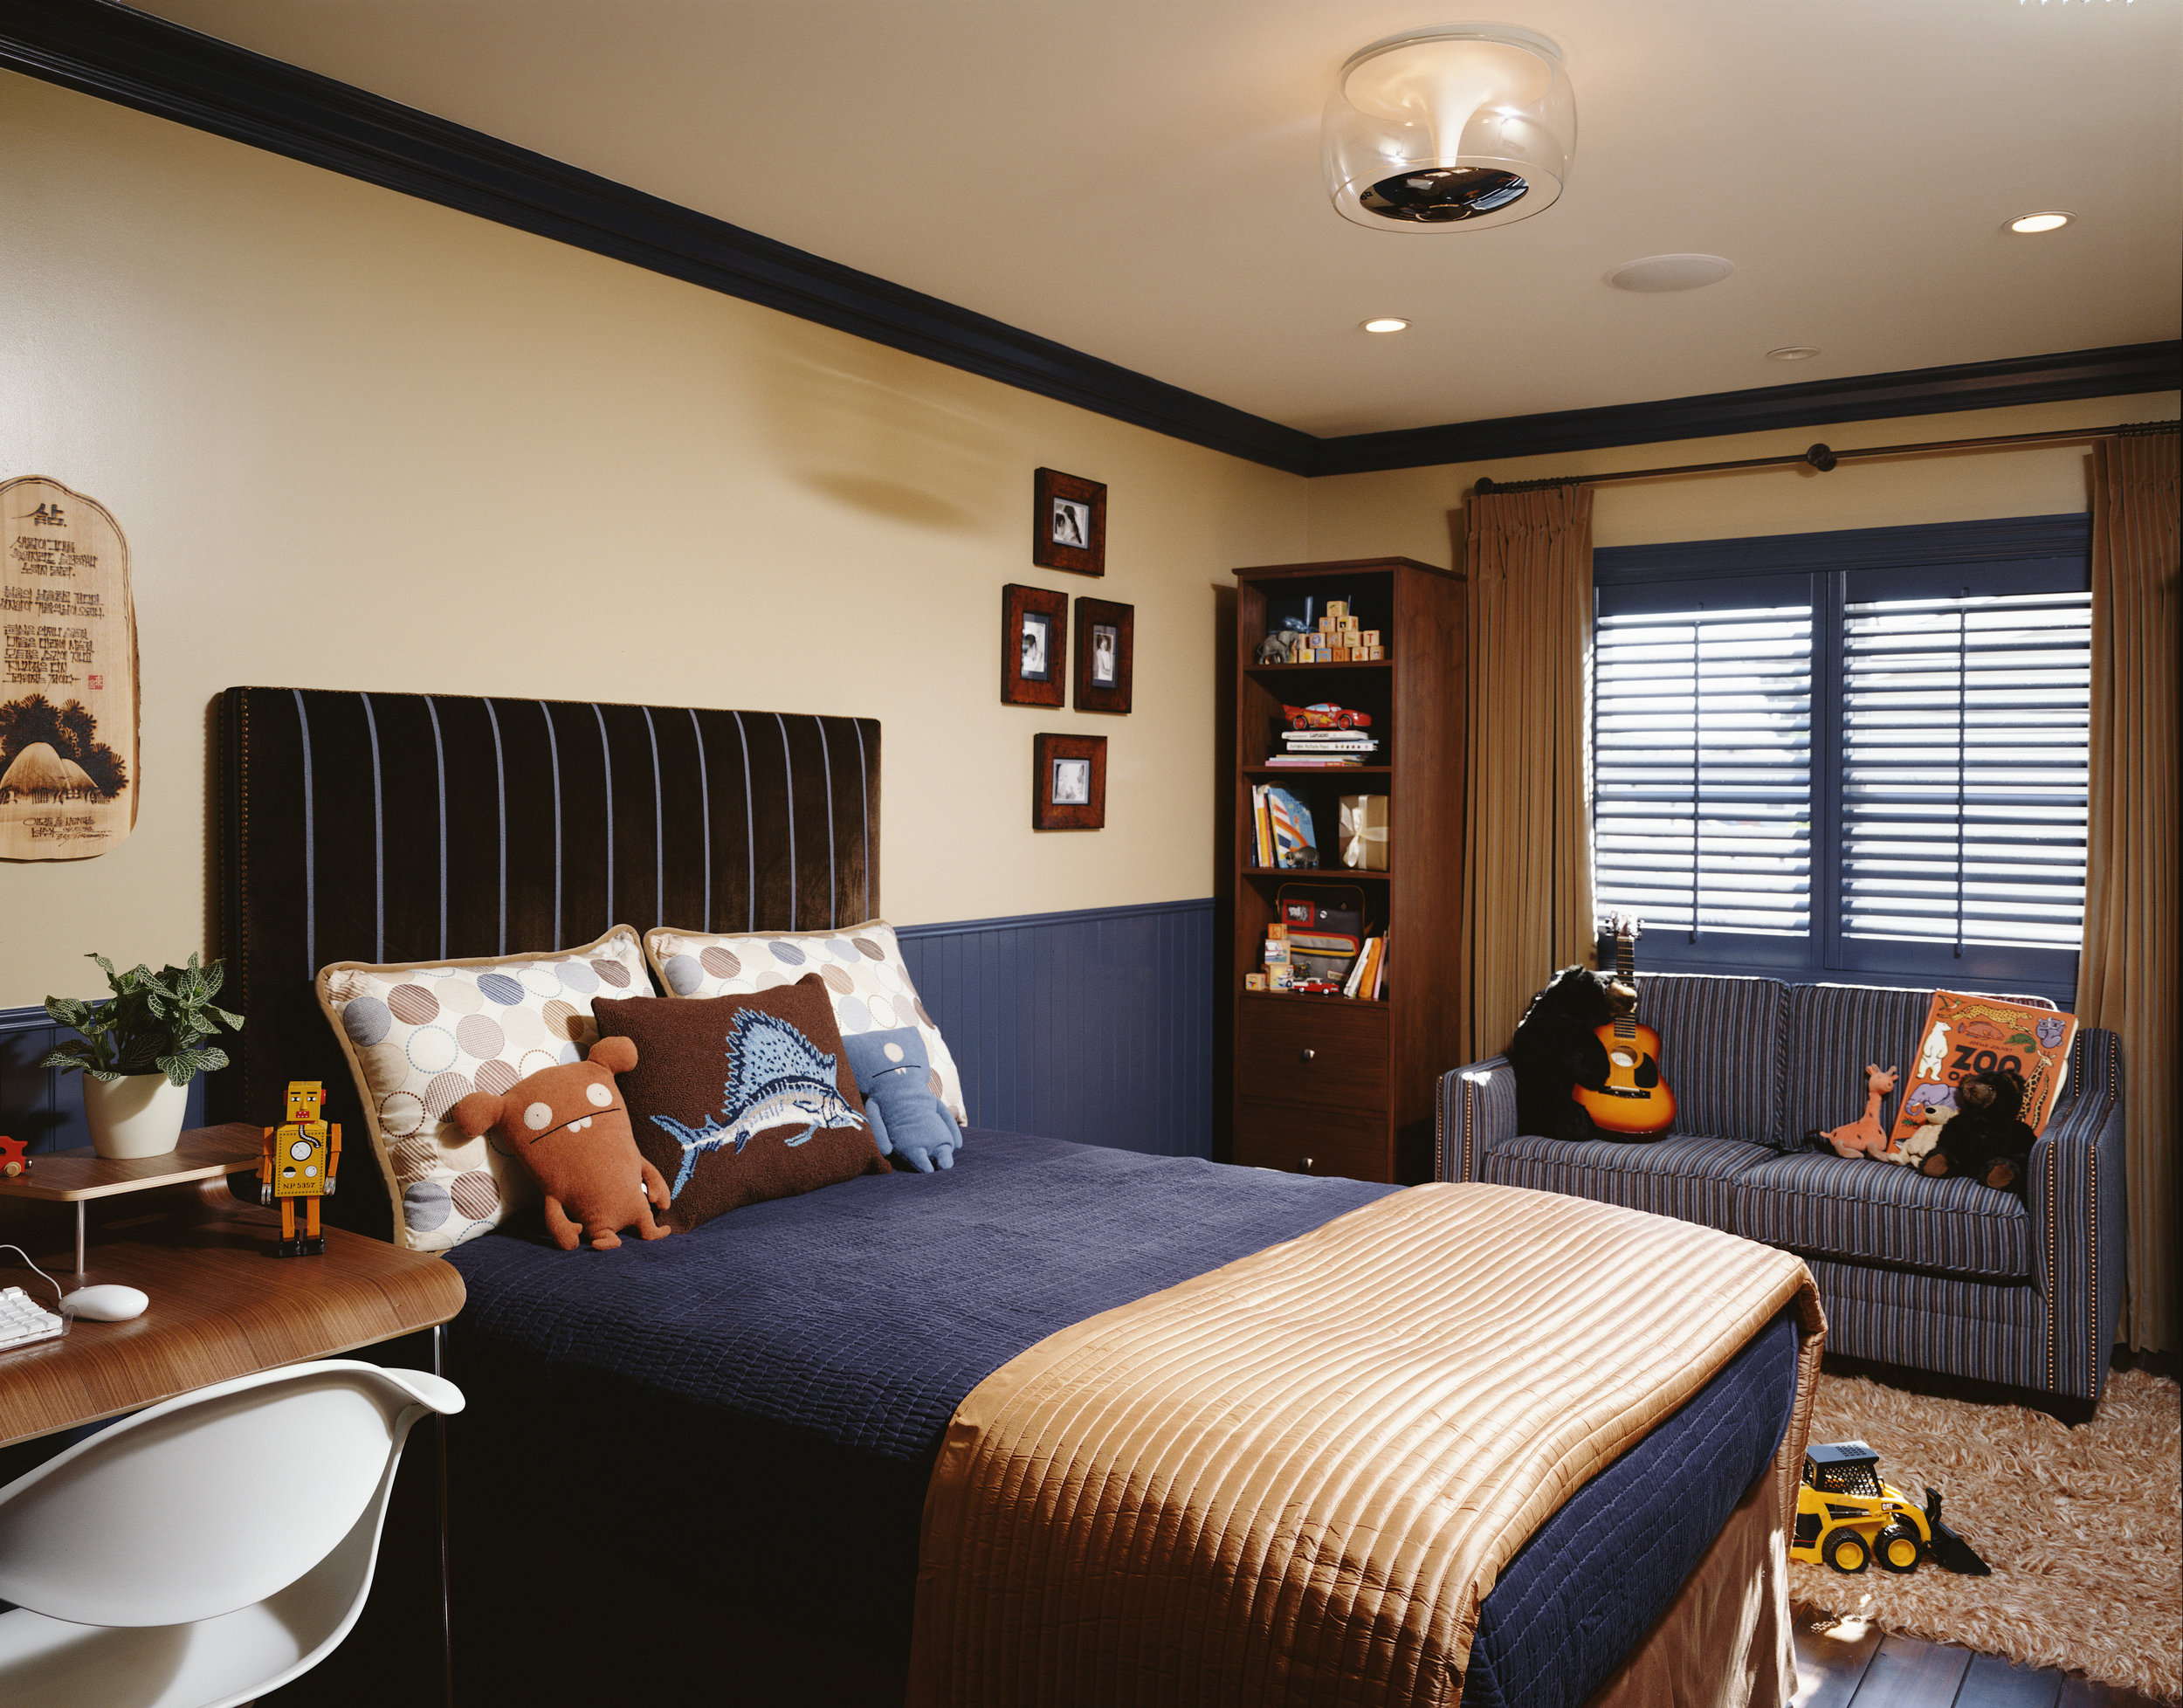 sarah-barnard-design-boys-bedroom.jpg